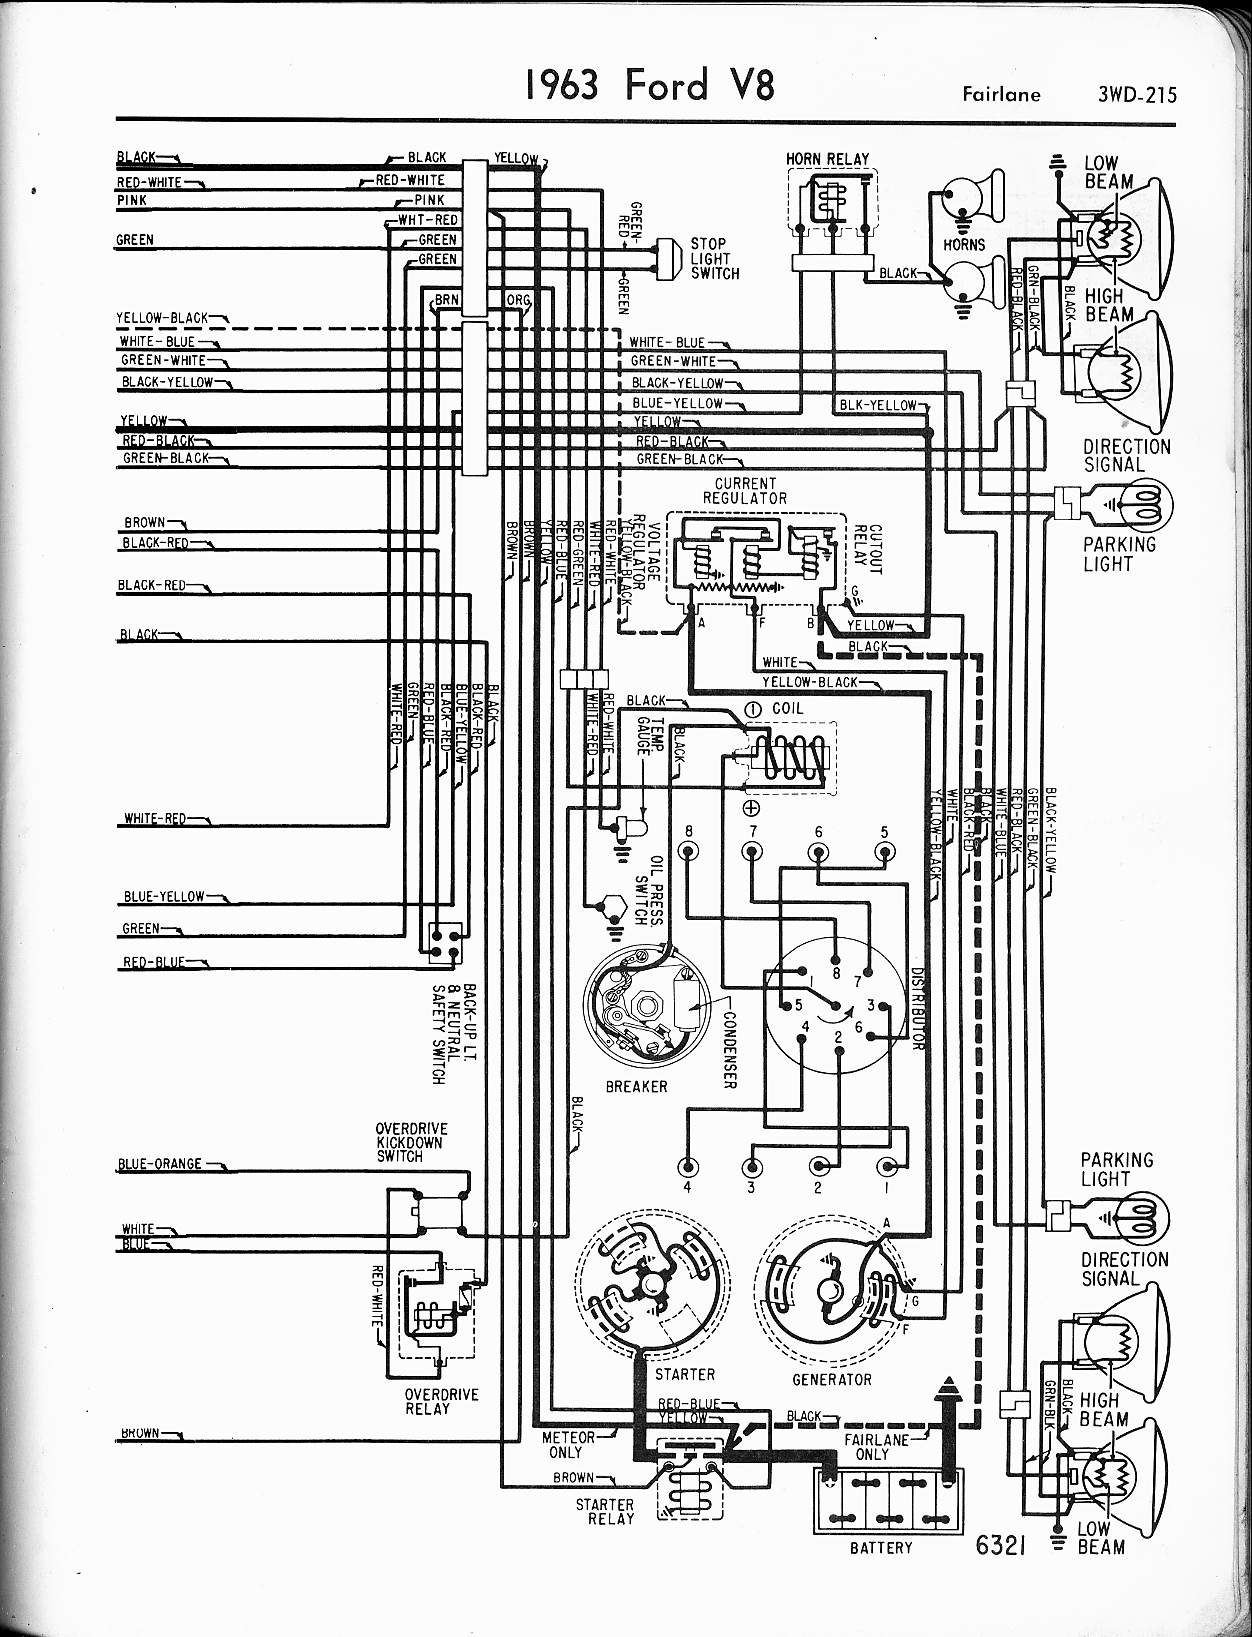 Gm Steering Column Wiring Diagram together with Ford Parts Diagrams likewise Schematics e together with Steering Suspension Diagrams in addition 63 Ford Ranchero Wiring Diagrams. on 1964 ford fairlane wiring diagram